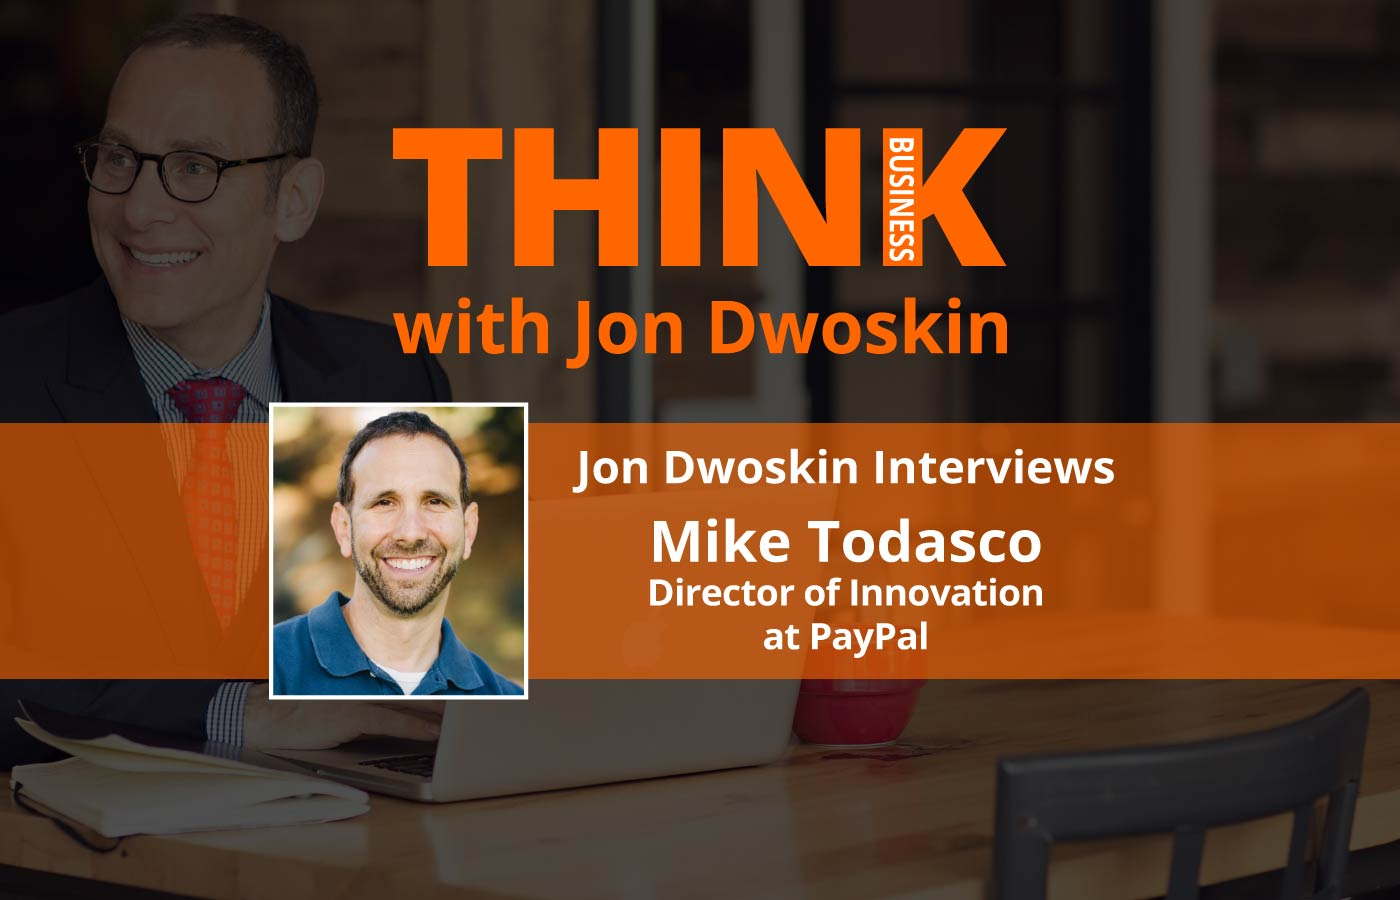 THINK Business: Jon Dwoskin Interviews Mike Todasco, Director of Innovation at PayPal